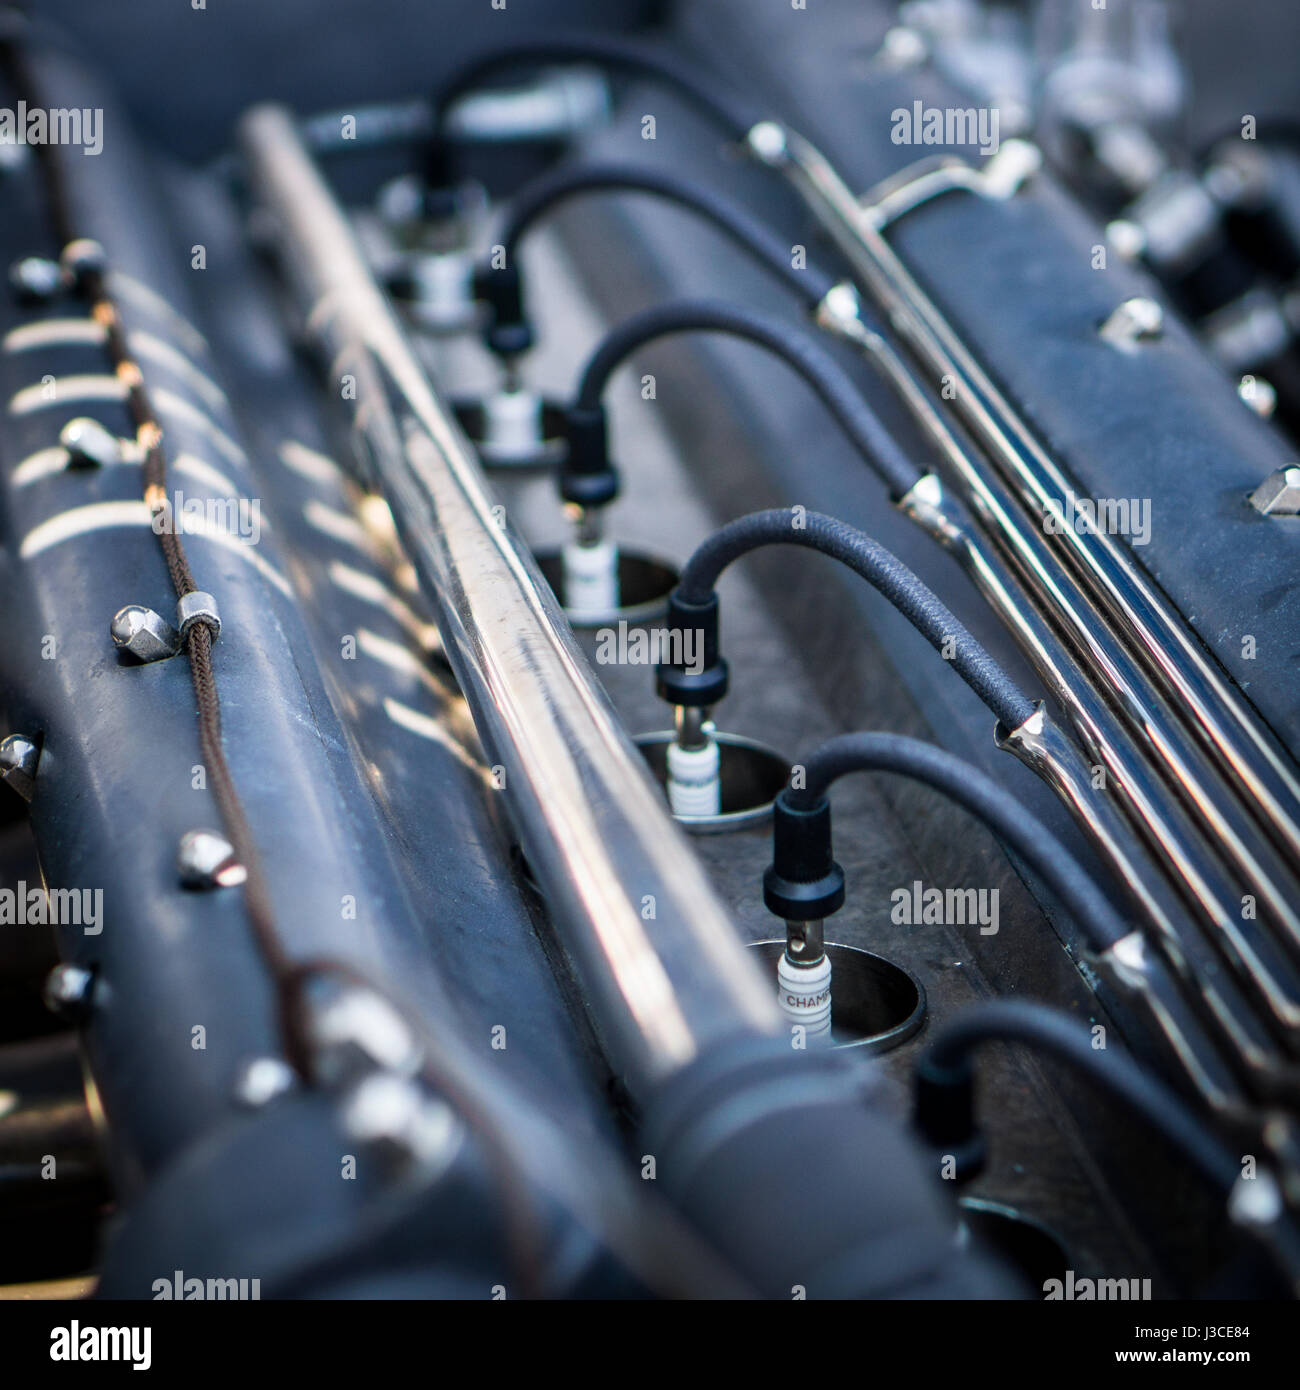 Spark Plug Wire Stock Photos & Spark Plug Wire Stock Images - Alamy